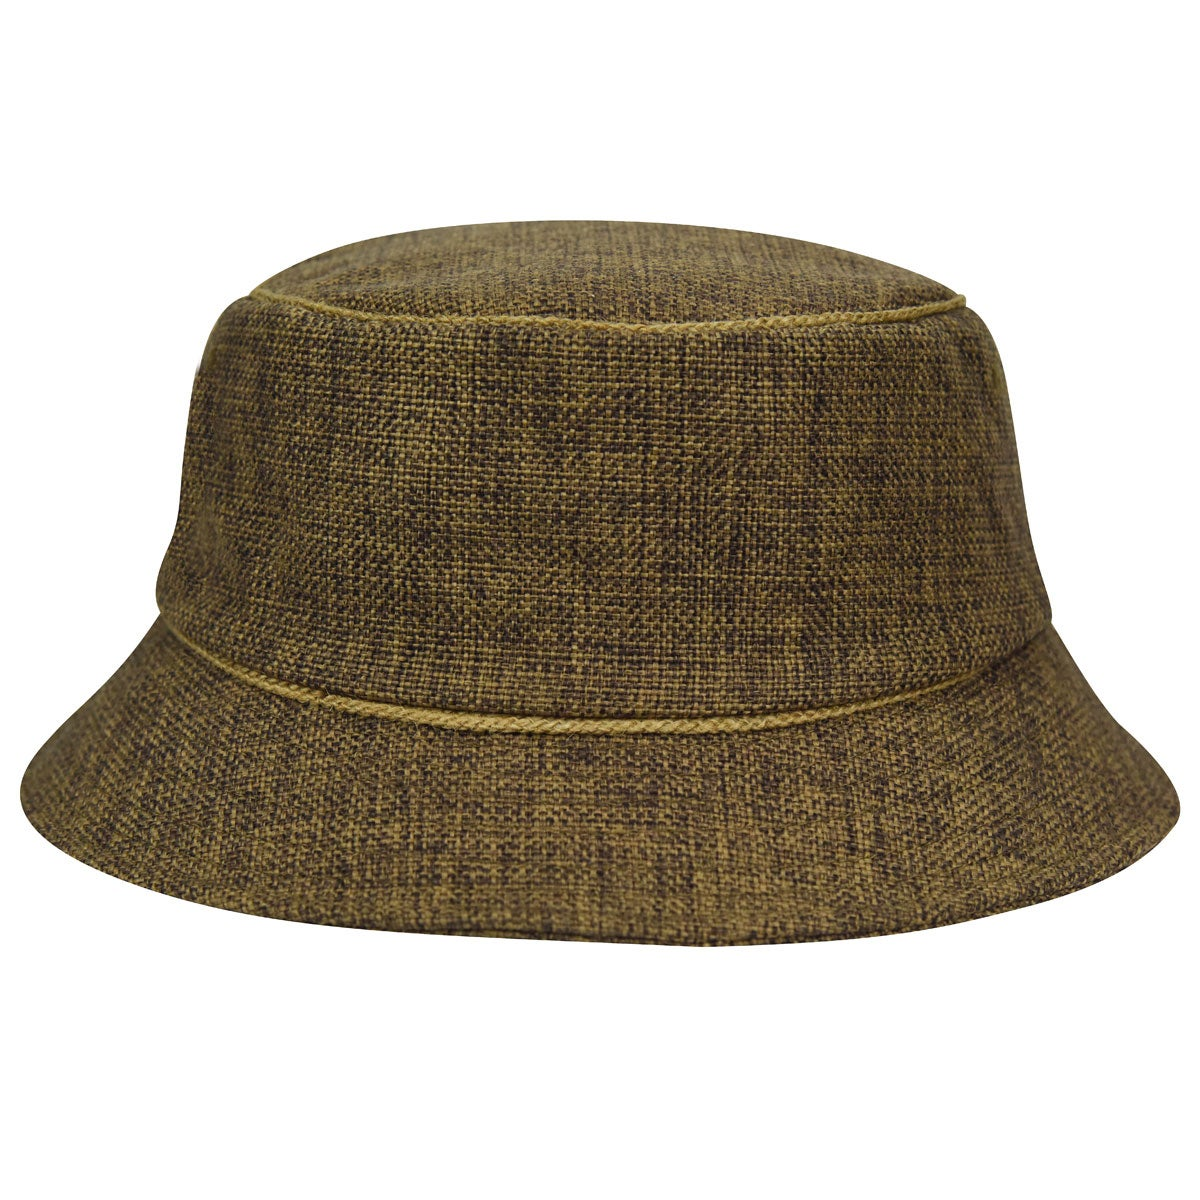 1960s – 70s Style Men's Hats Isle of Matador Bucket Hat $24.50 AT vintagedancer.com